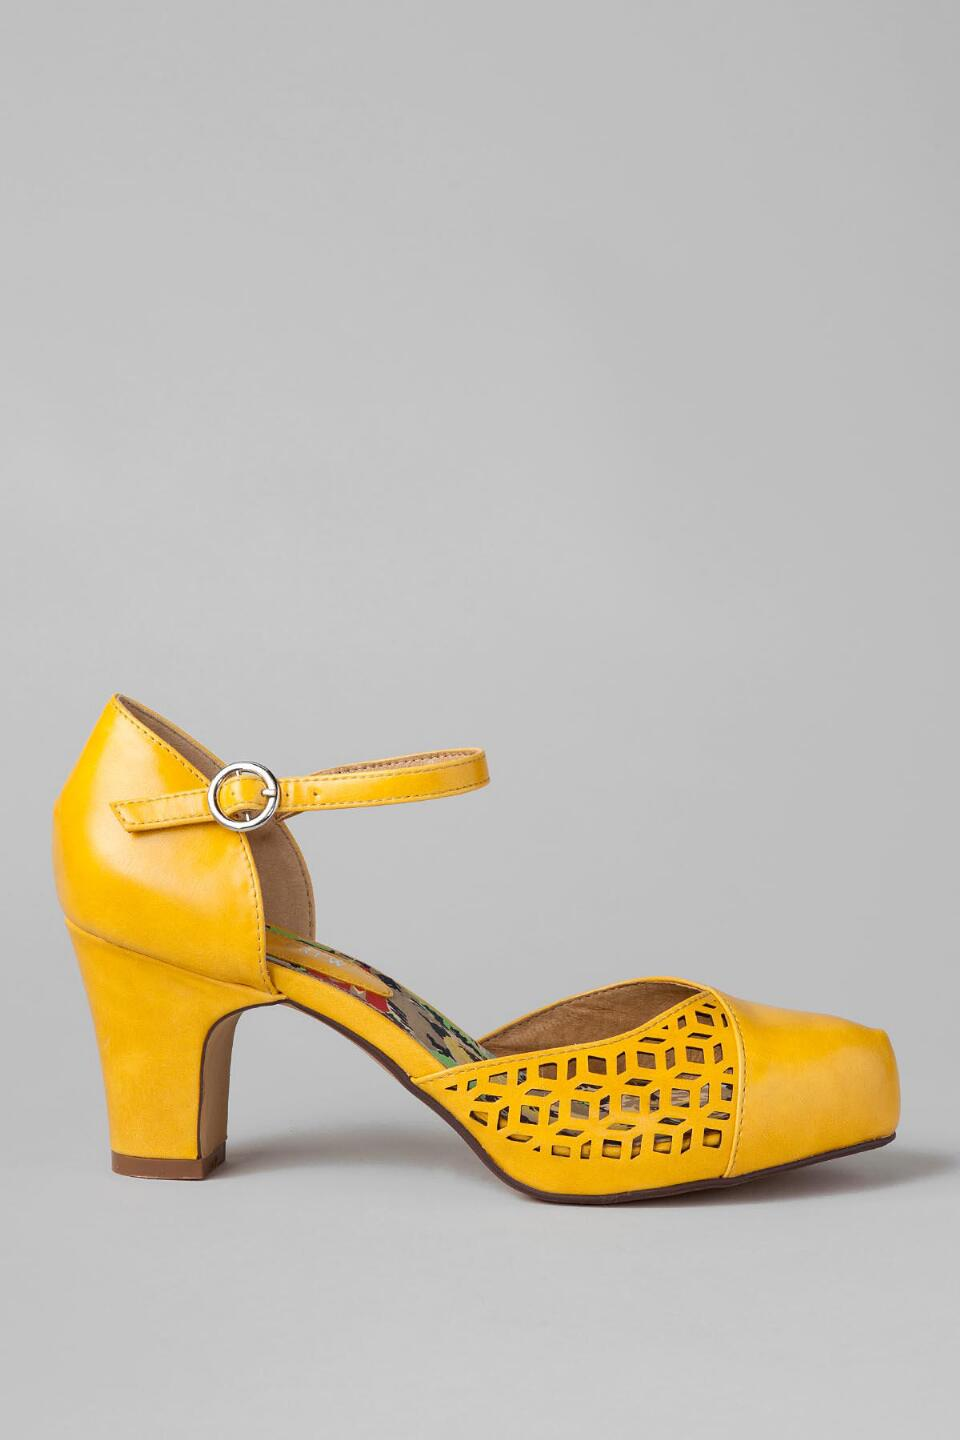 Chelsea Crew Shoes, Turk Cutout Pump in Yellow-  yllw-clright